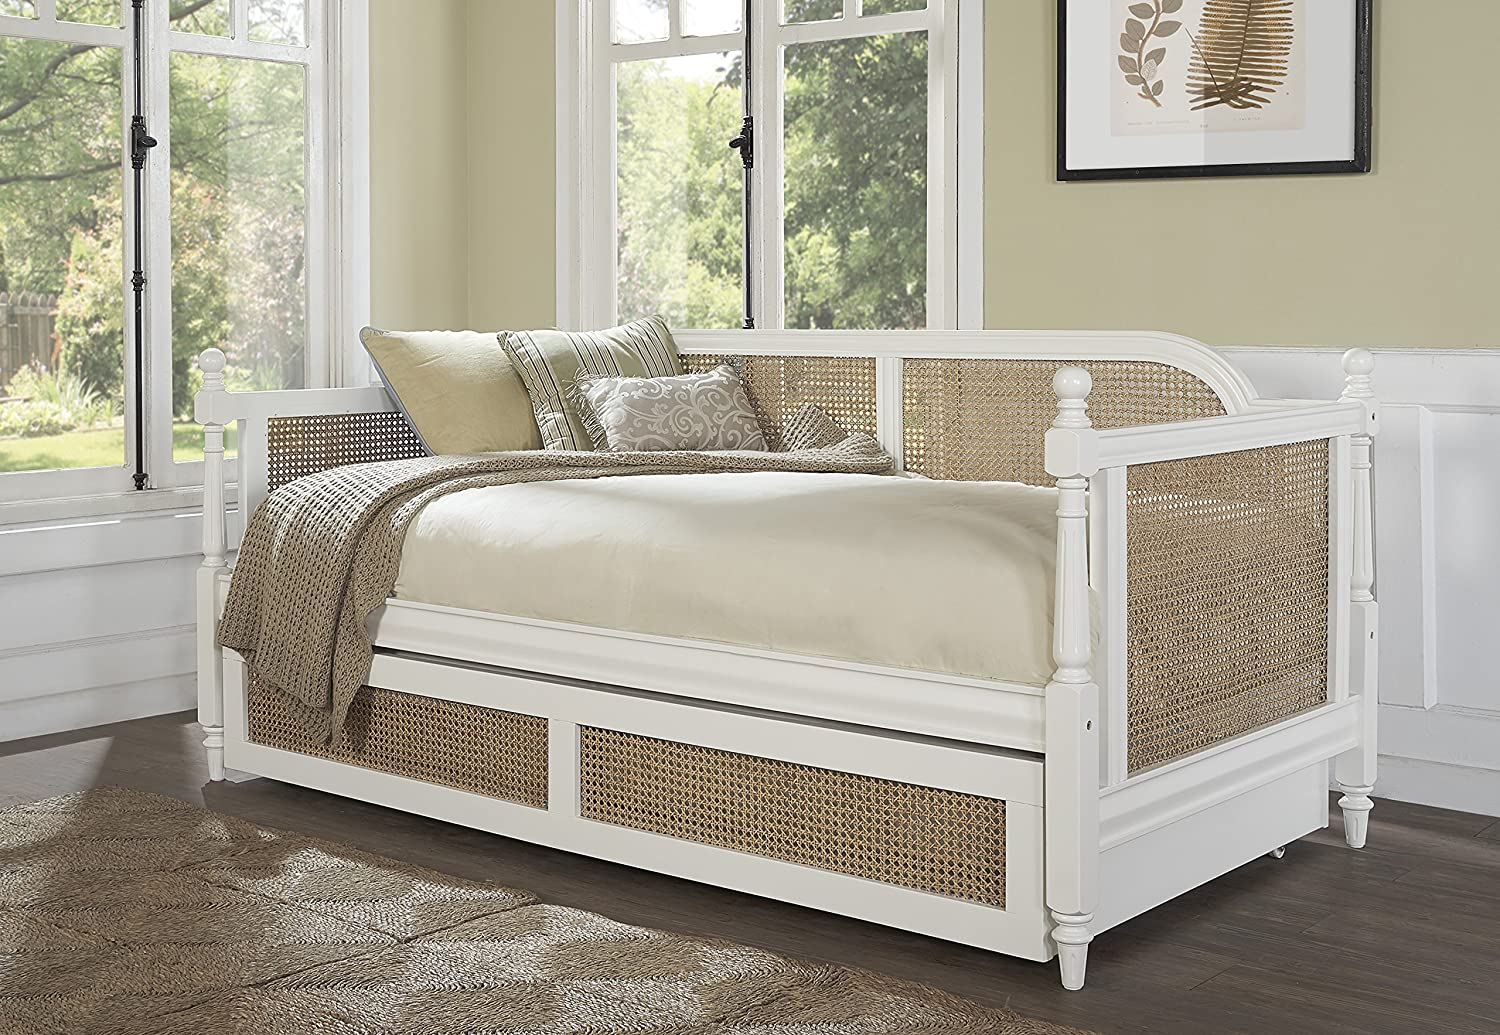 Hillsdale Melanie Daybed with Trundle